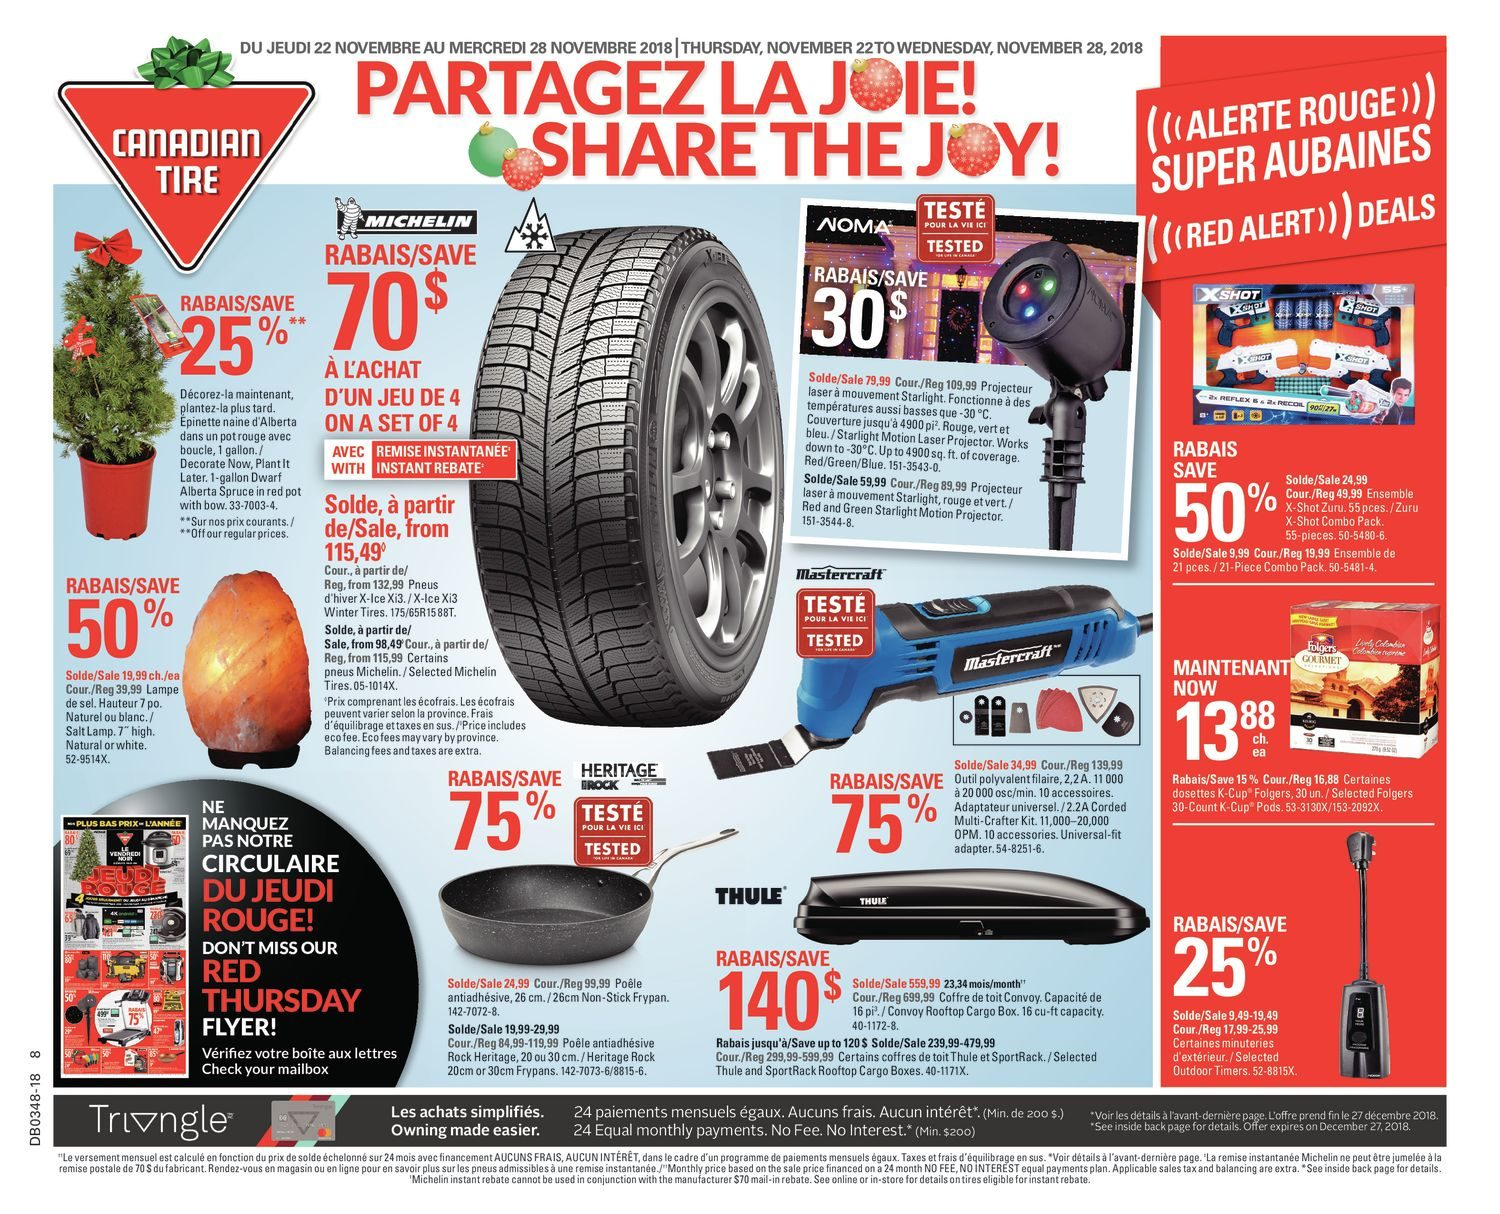 b11a95a5aff Canadian Tire Weekly Flyer - Weekly - Share The Joy! - Nov 22 – 28 -  RedFlagDeals.com